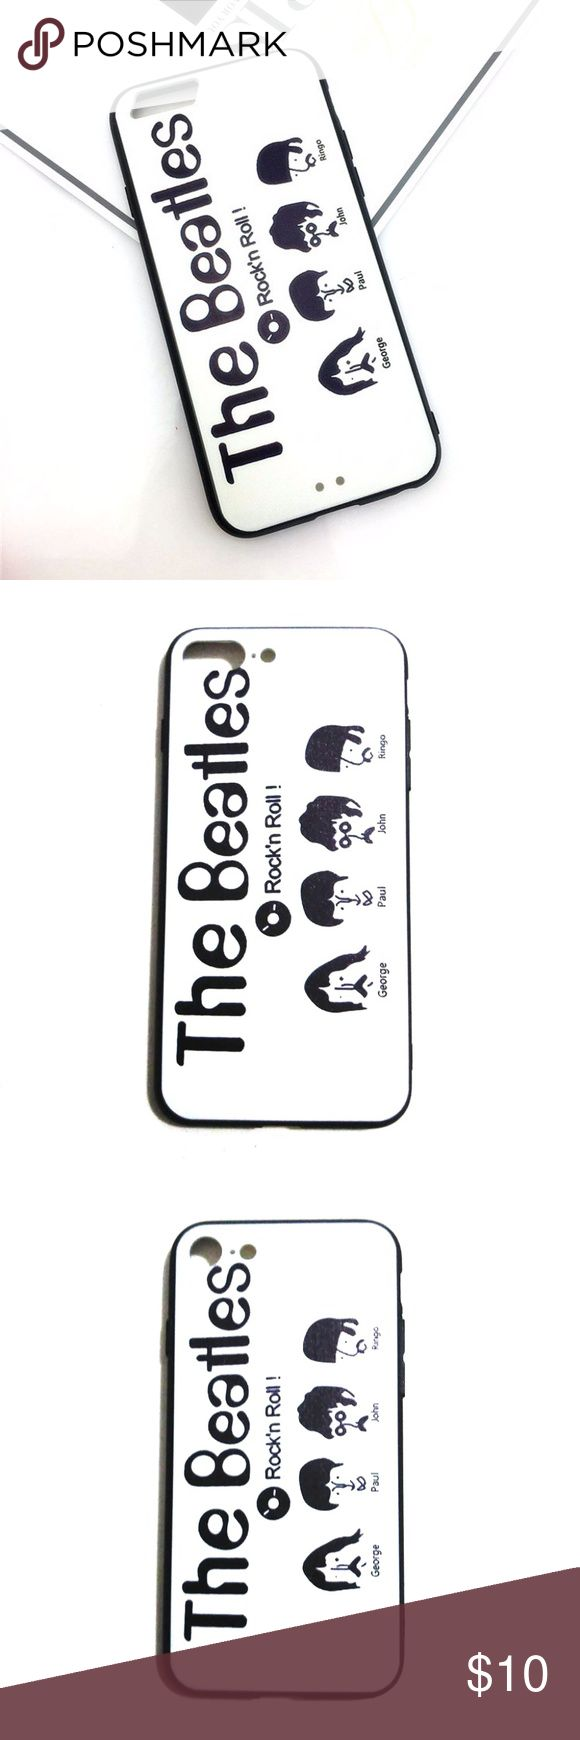 iPhone Case 6/6s 7/7 Plus NEW Style iPhone Case Innovative Design Beautiful and Fashion  THIS IPHONE CASE AVAILABLE FOR iPhone 6/6S iPhone 6/6S Plus iPhone 7 iPhone 7 Plus  MORE OPTIONS: Vehicle Number Plate of Los Angeles LM.299  Vehicle Number Plate of Oklahoma FU 724 The Beatles Hollywood Clapperboard Elephant with Standing Ring Other